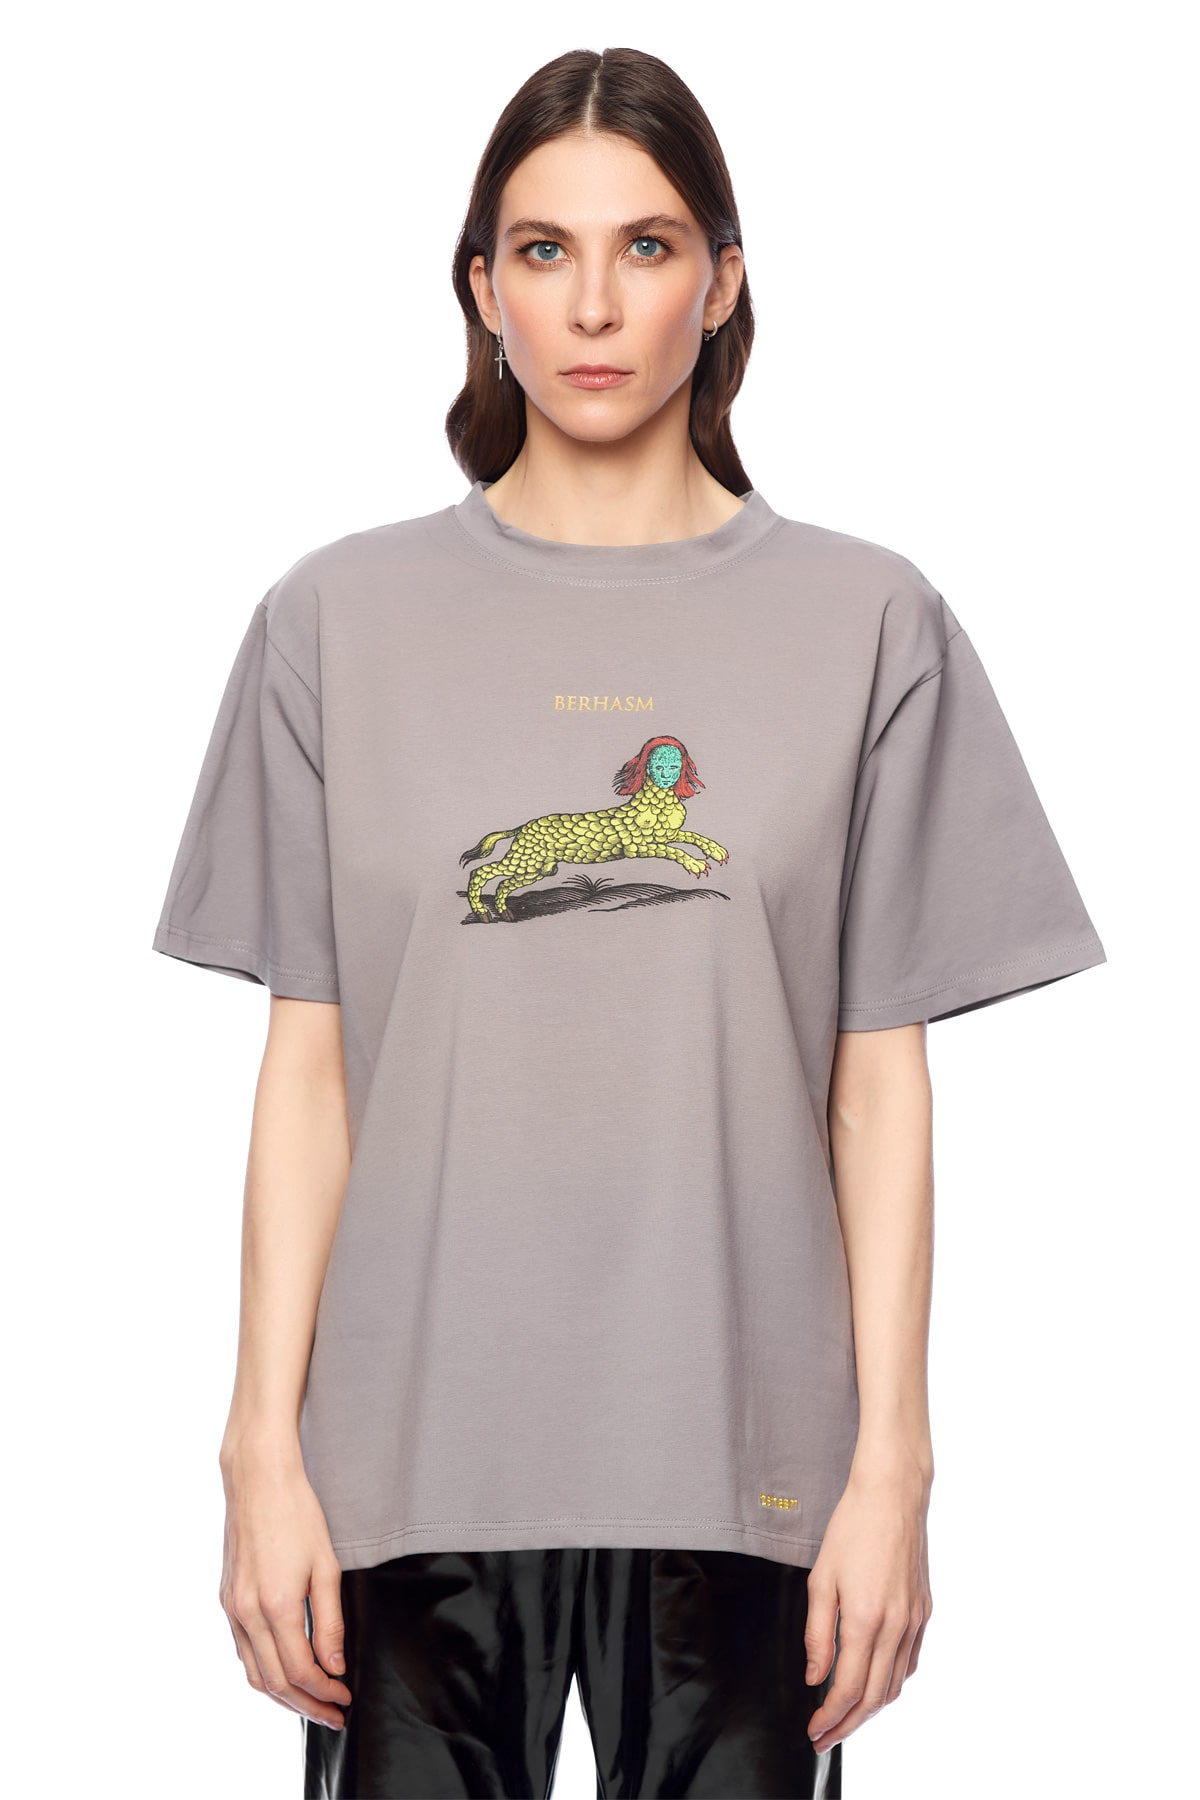 Surprise in the Zoo T-shirt